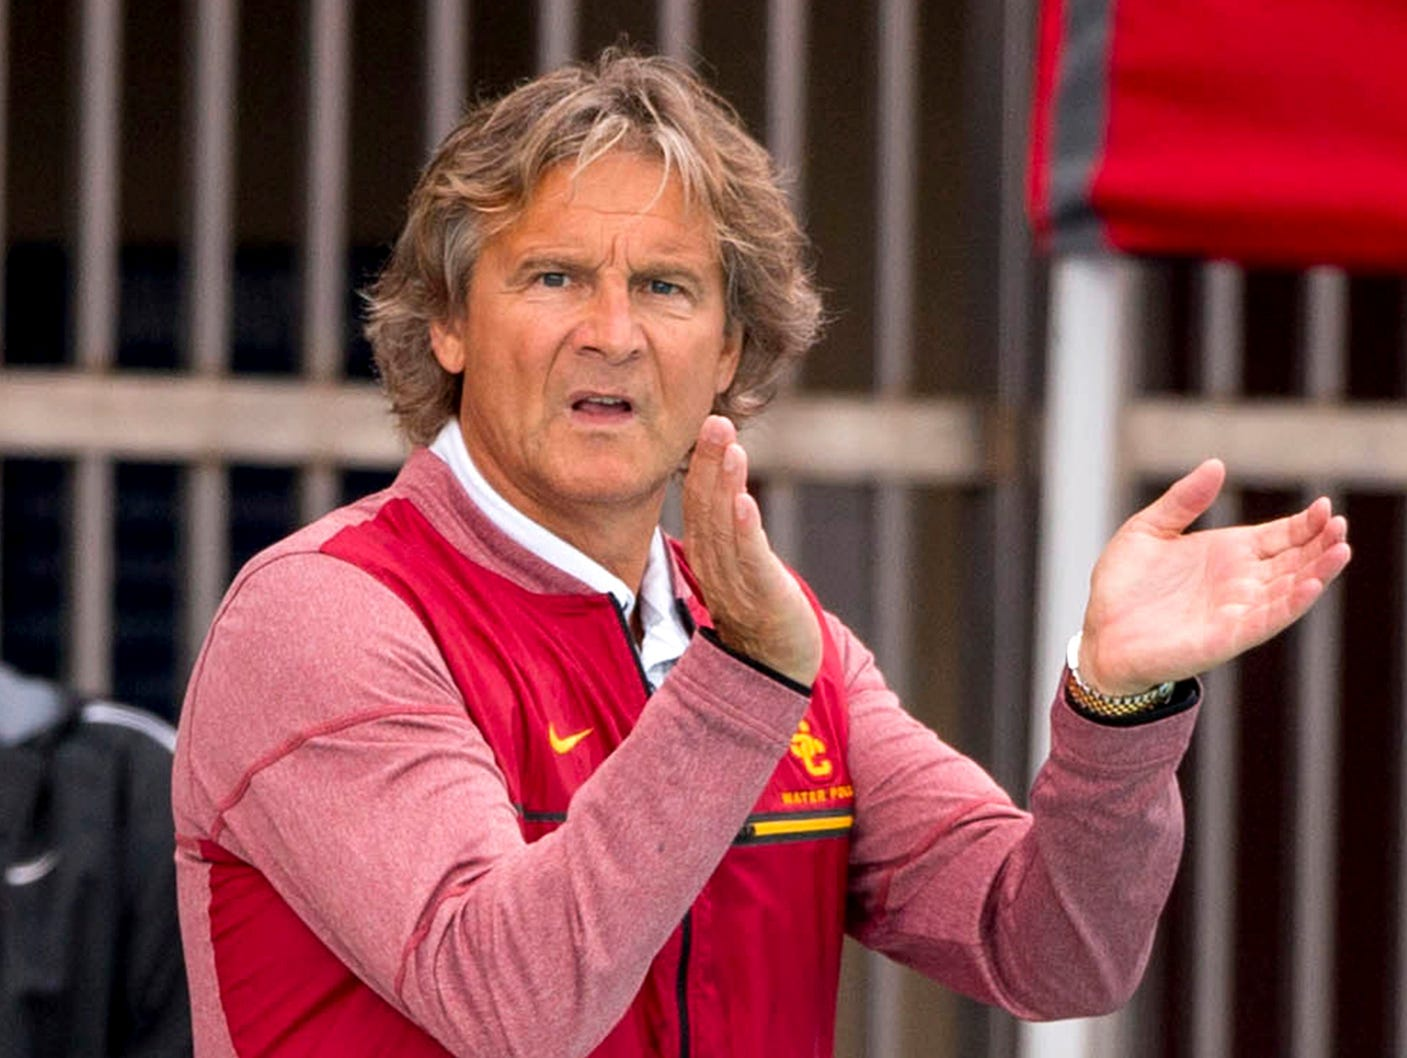 USC men's and women's water polo coach Jovan Vavic is among nearly 50 people charged in an admissions bribery scheme.